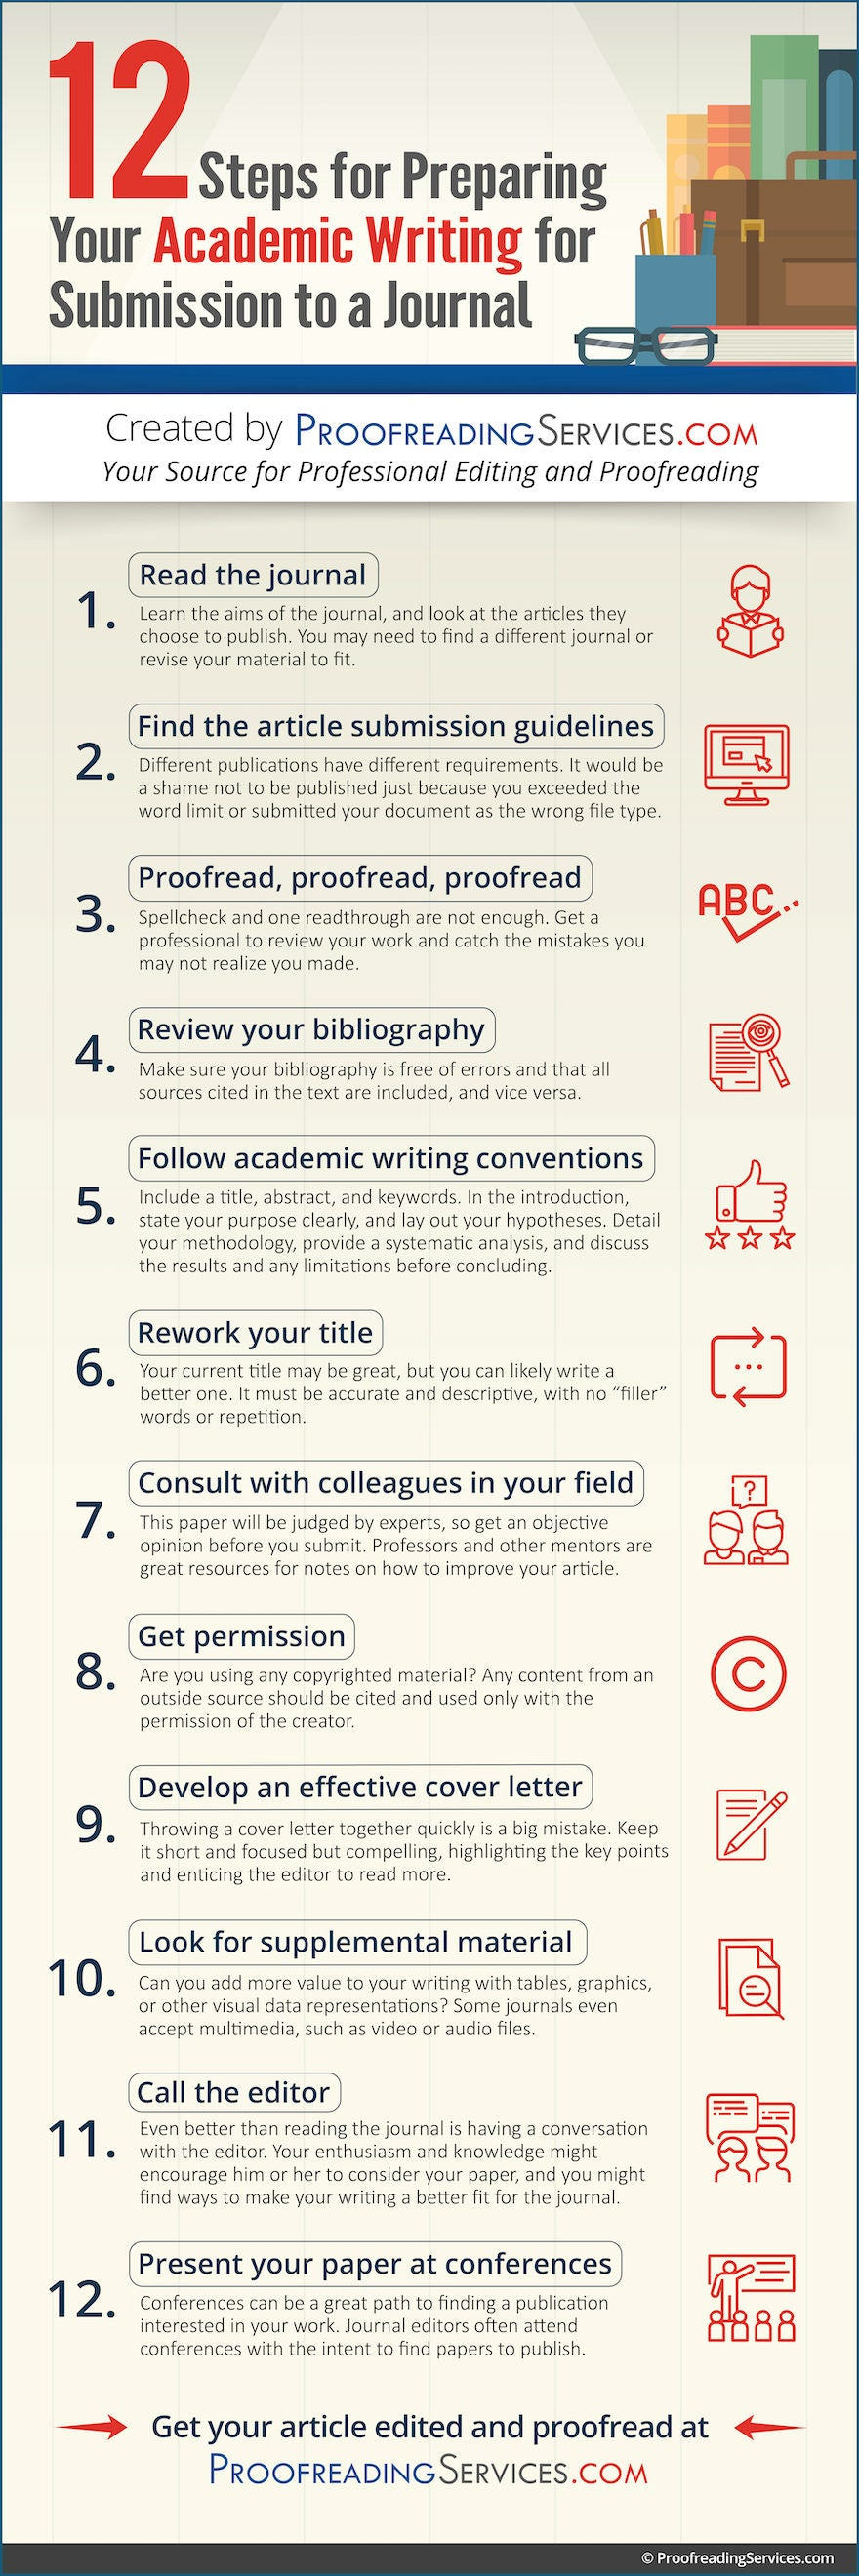 12 Steps for Preparing Your Academic Writing for Submission to a Journal infographic